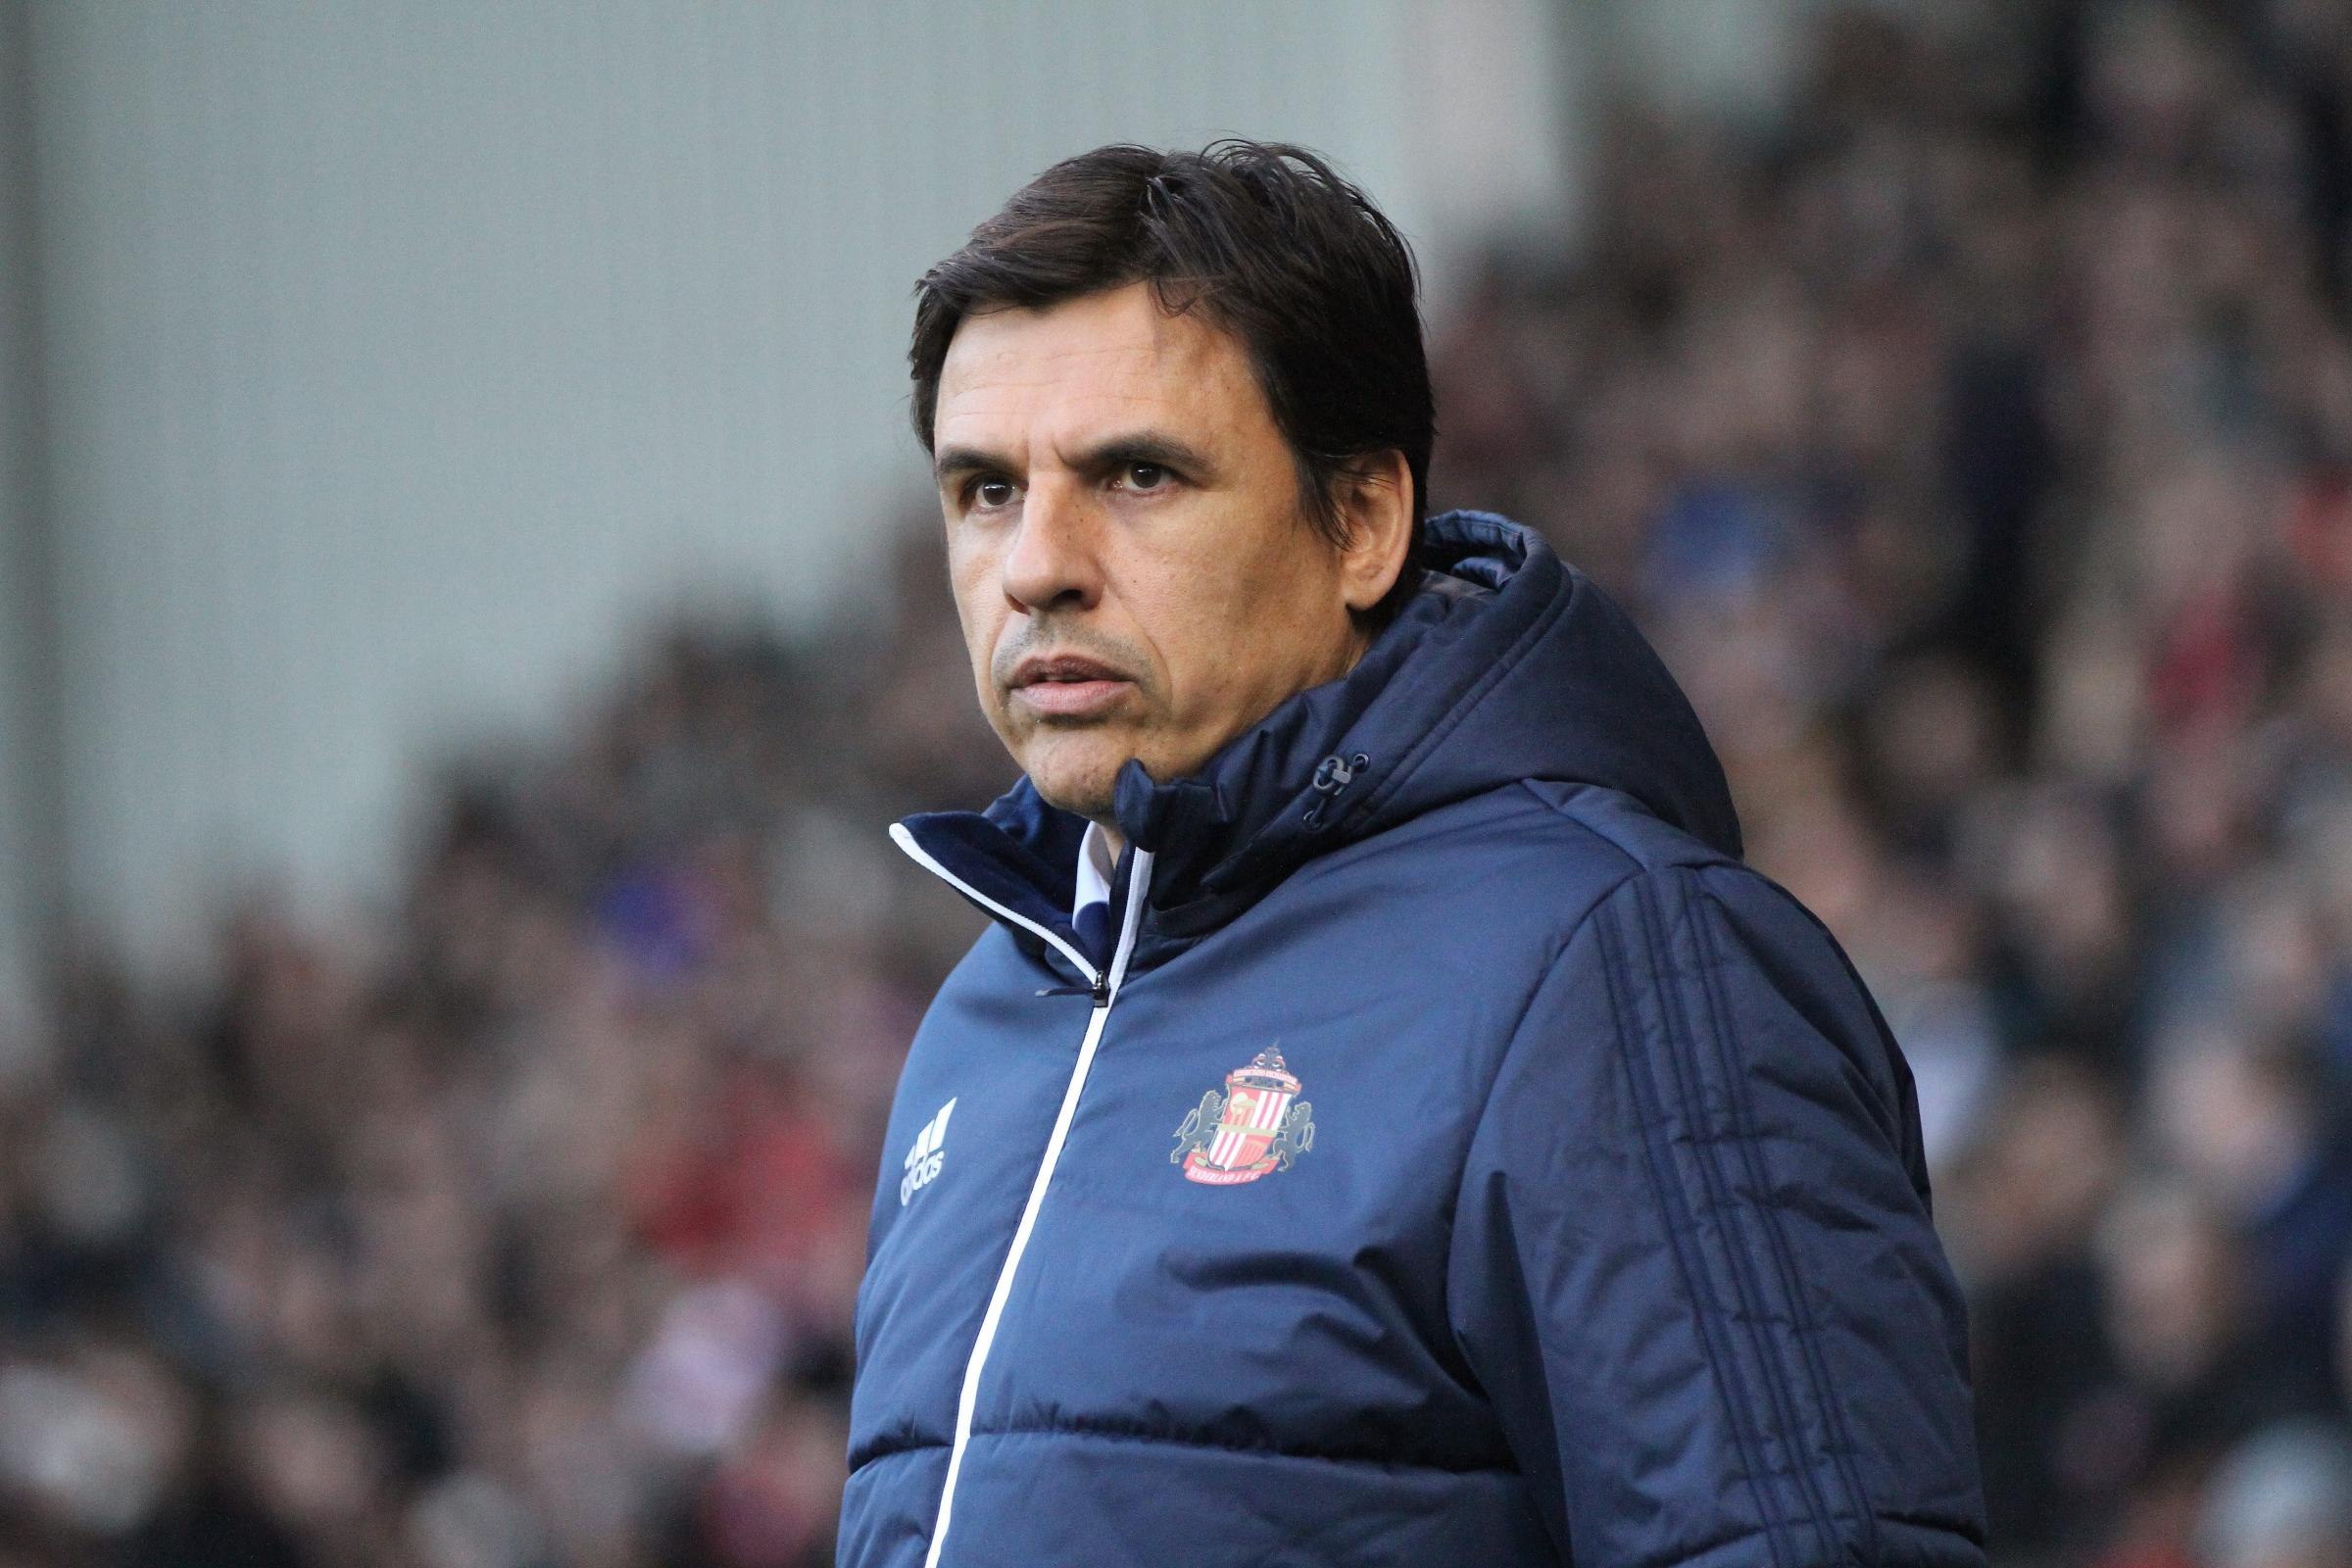 Sunderland Manager Chris Coleman during the Sky Bet Championship match between Sheffield United and Sunderland at Bramall Lane, Sheffield on Tuesday 26th December 2017. (Credit: Simon Newbury | MI News & Sport Ltd)